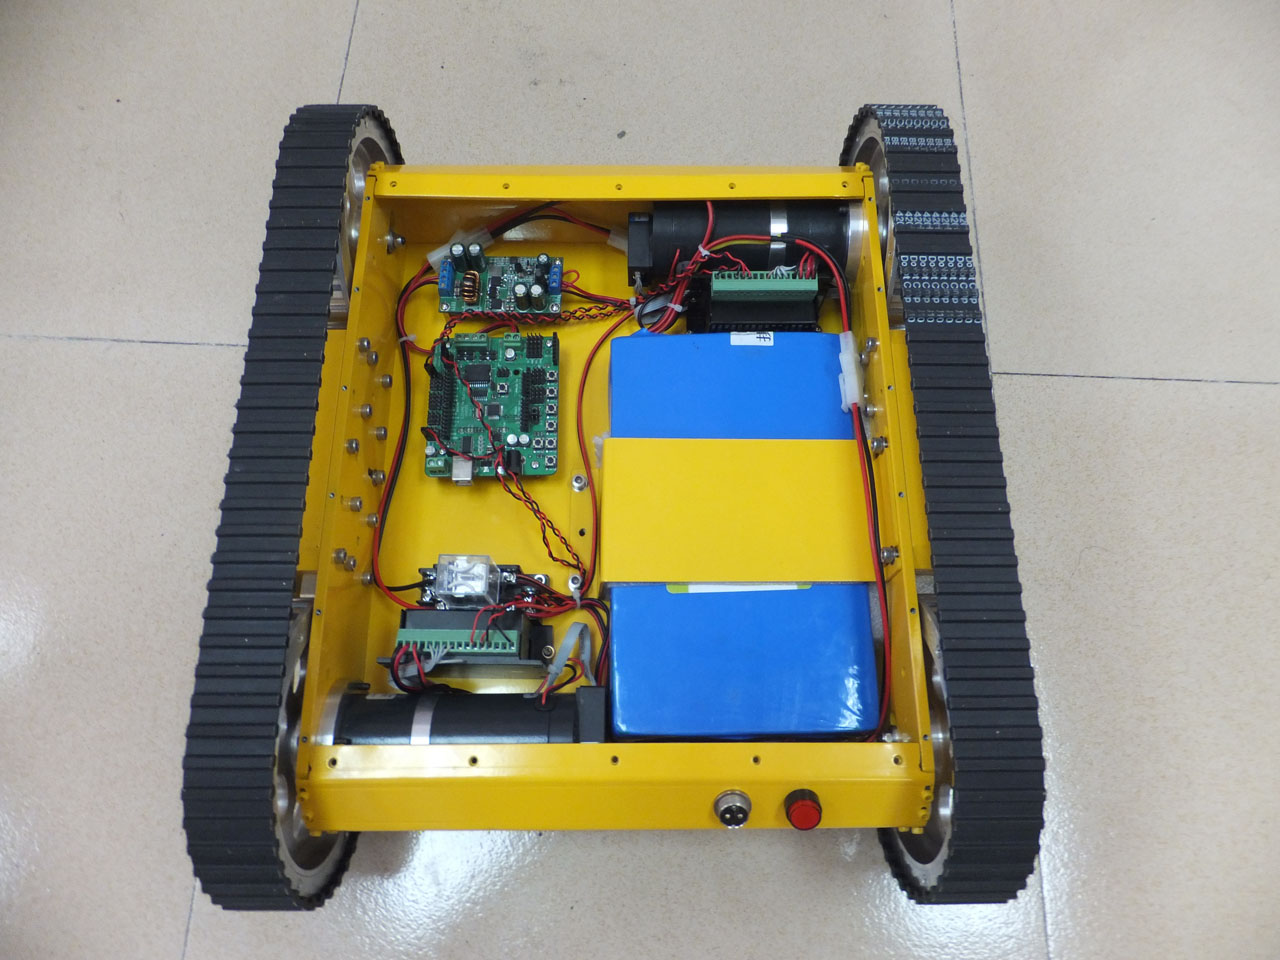 Heavy-duty-tracked-mobile-robot-tank-kit-1